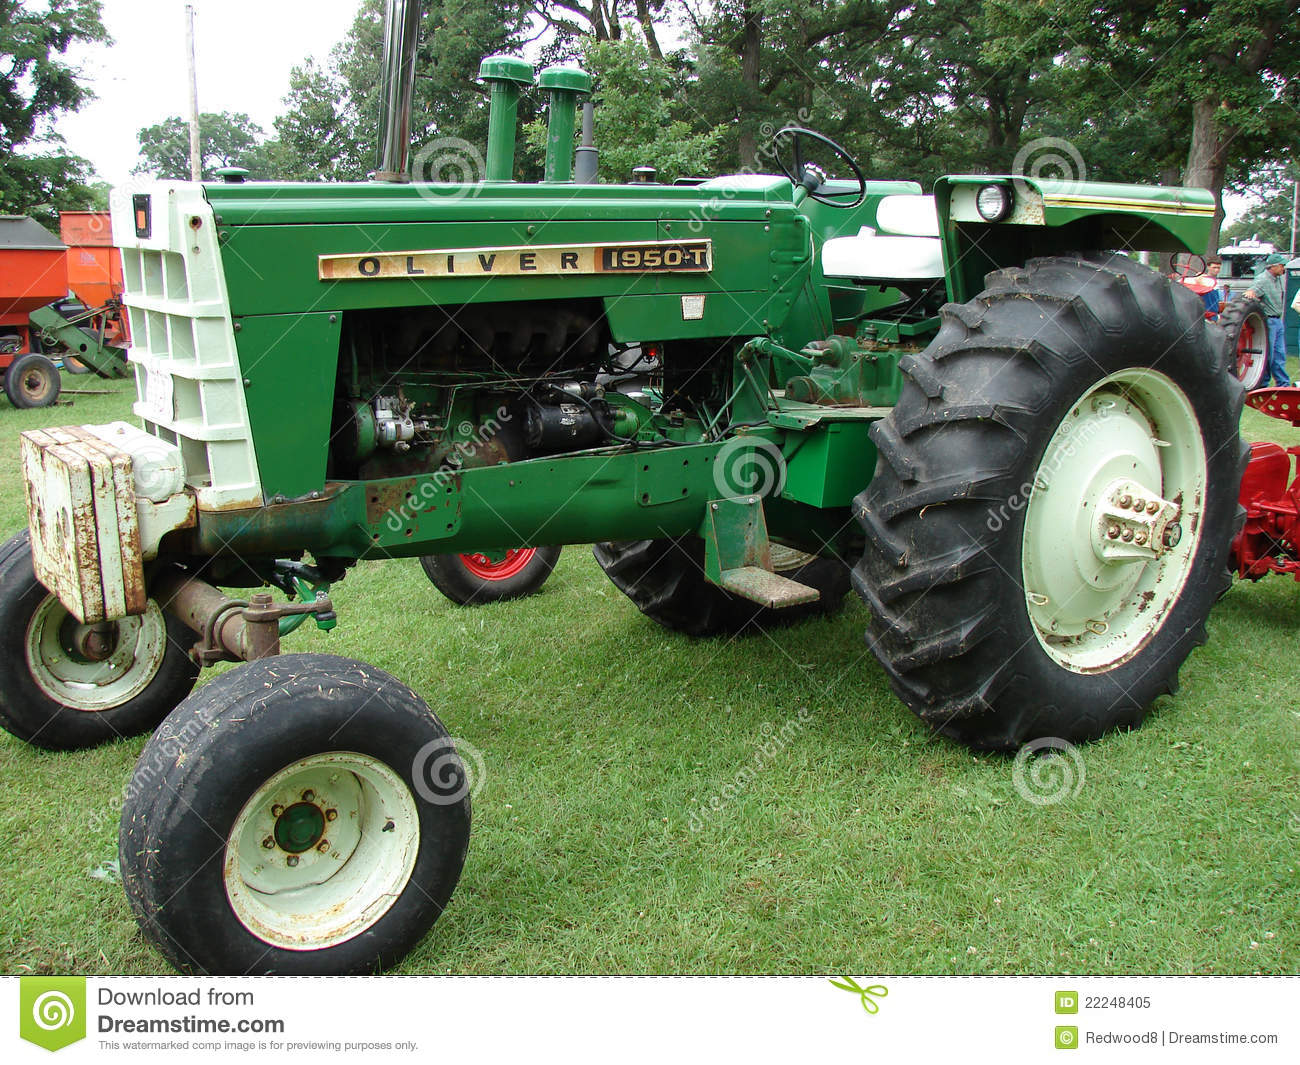 Stock Image Agricultural Tractor Illustration Art Hand Made Drawing Artwork Design Image39942751 besides Viewit furthermore IHS2014 Hood And Sheet Metal Bolt also Fordson F moreover Royalty Free Stock Photo Oliver 1950 T Tractor Image22248405. on oliver tractor engine